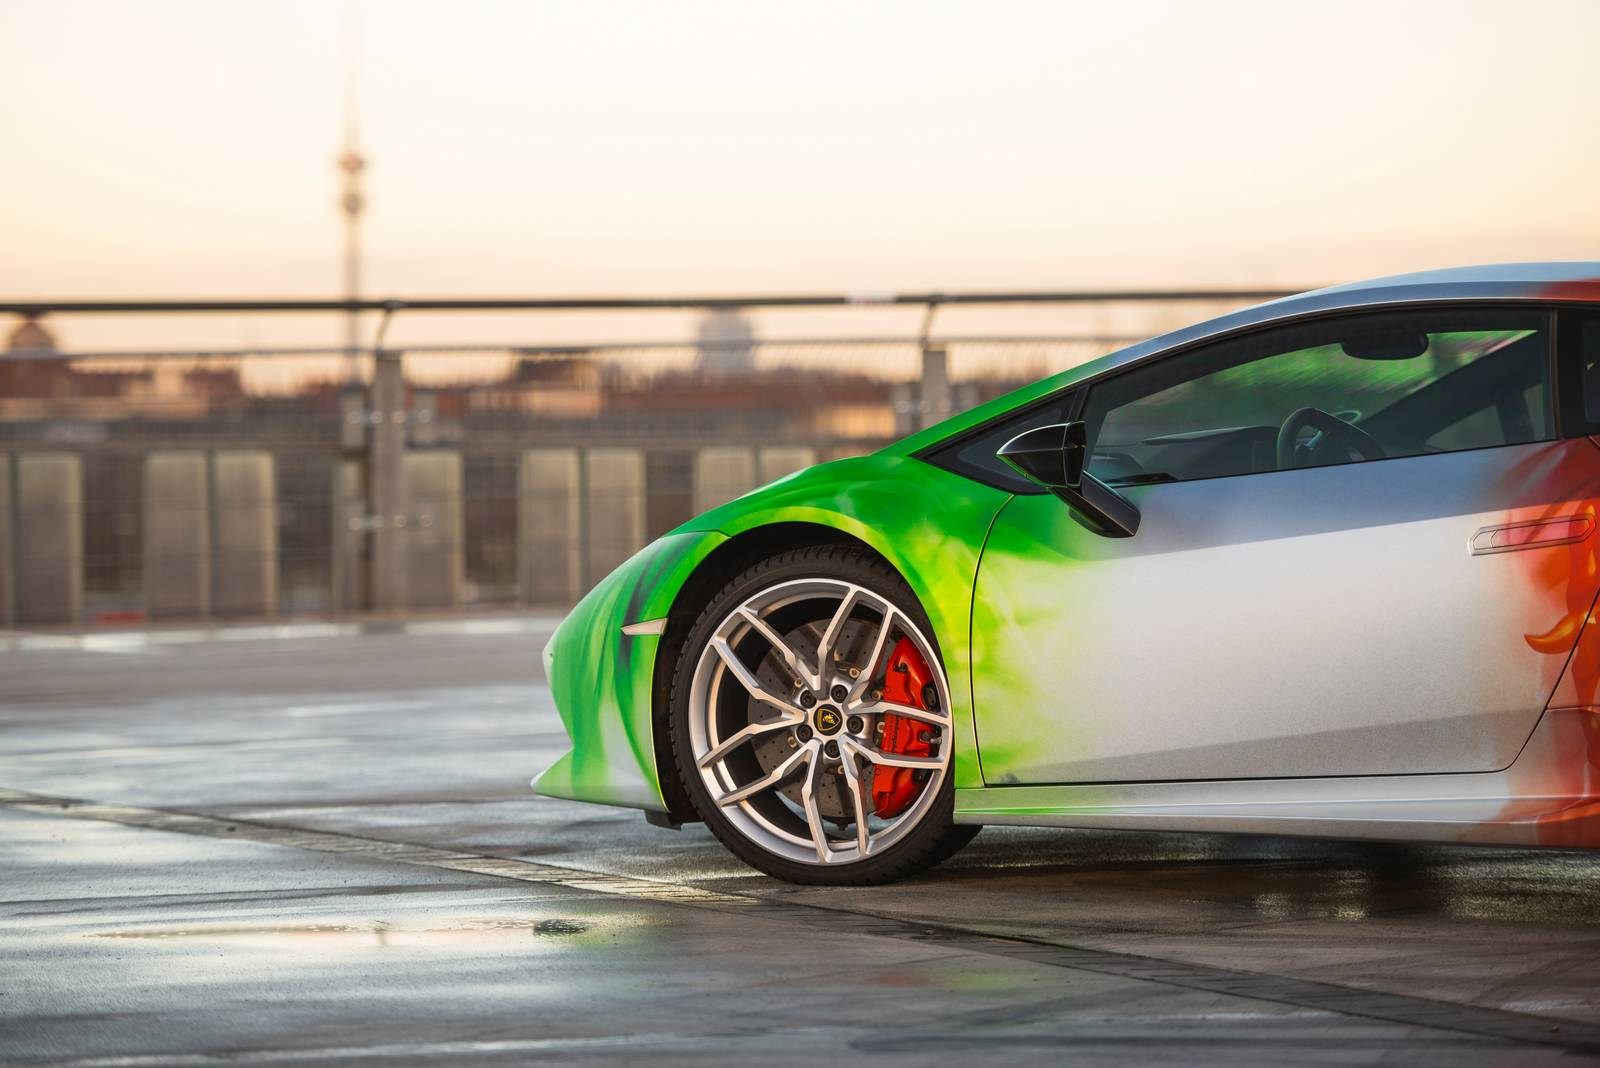 Porsche Gt3 Rs Price >> Lamborghini Huracan Wrapped in Tricolor Flames by Print ...